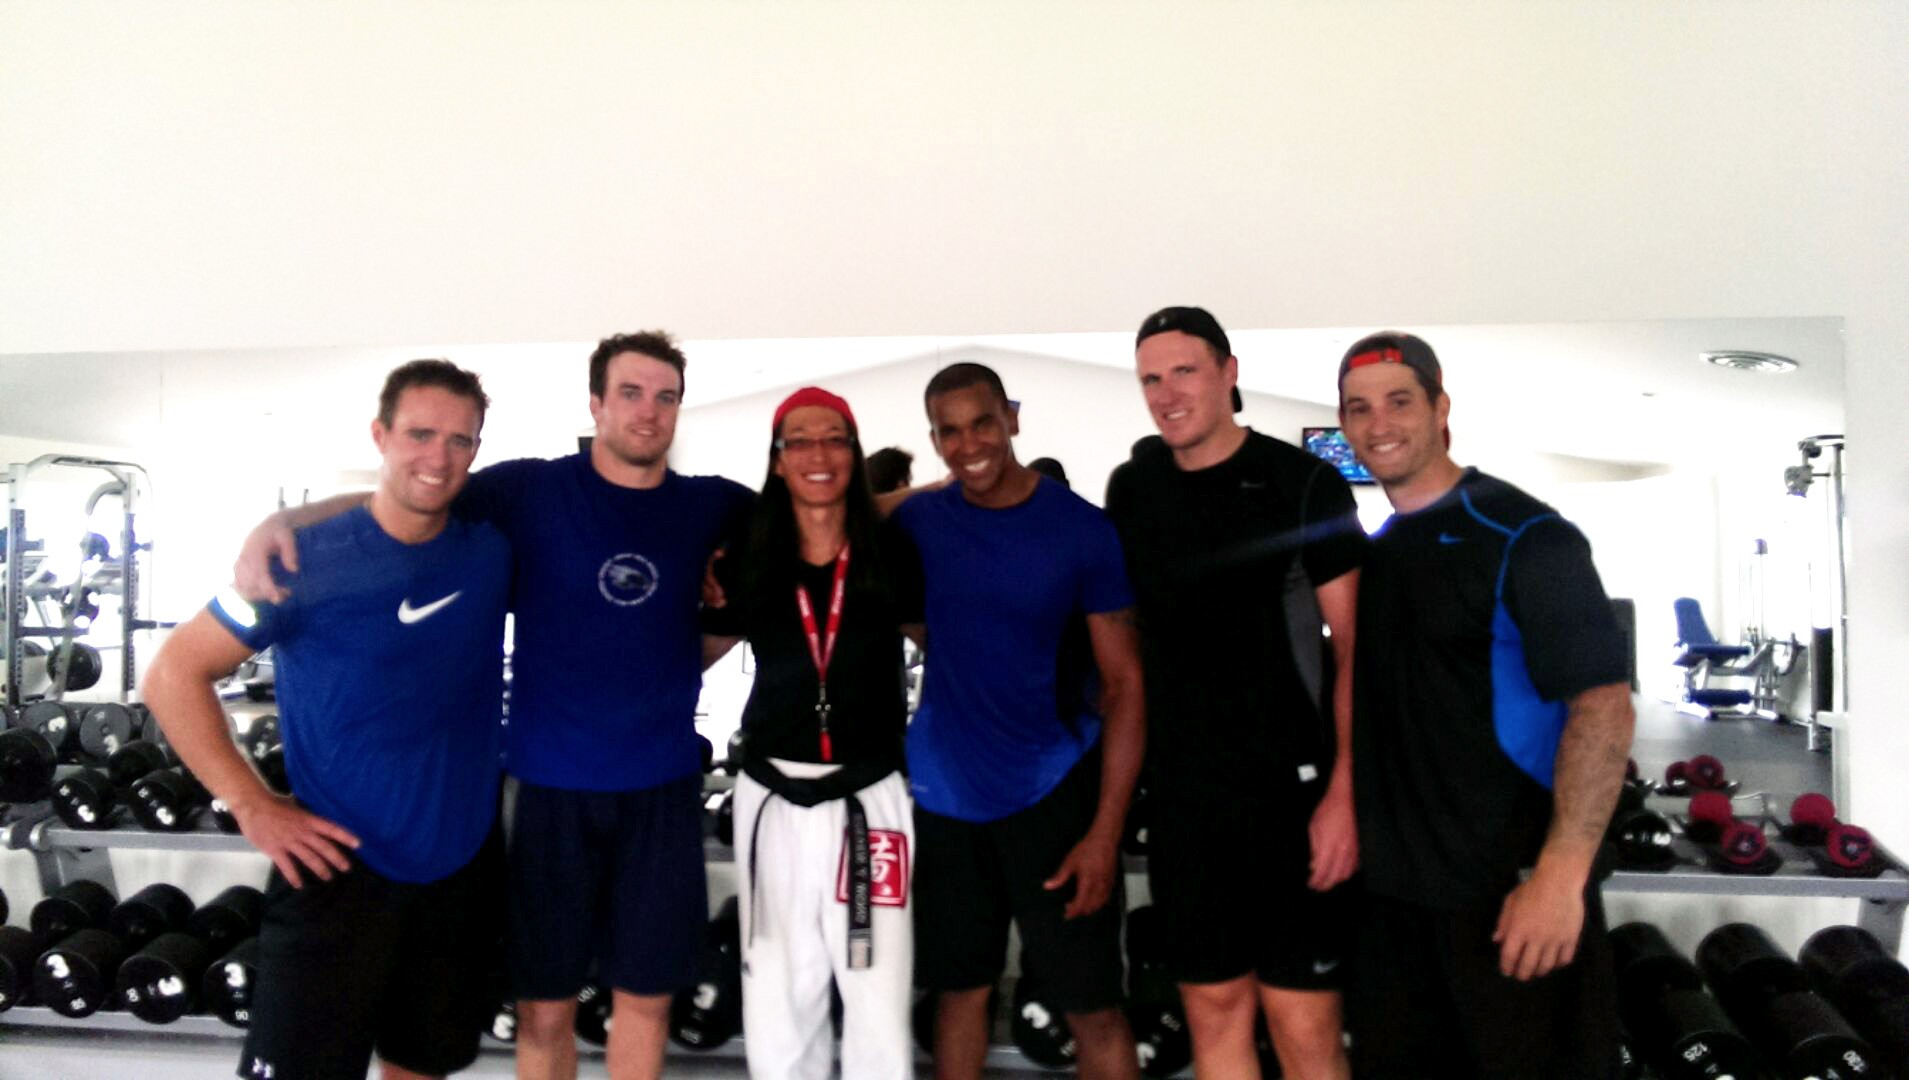 Contact us NOW to find out why Celebrities and Pro Athletes love WongMania!